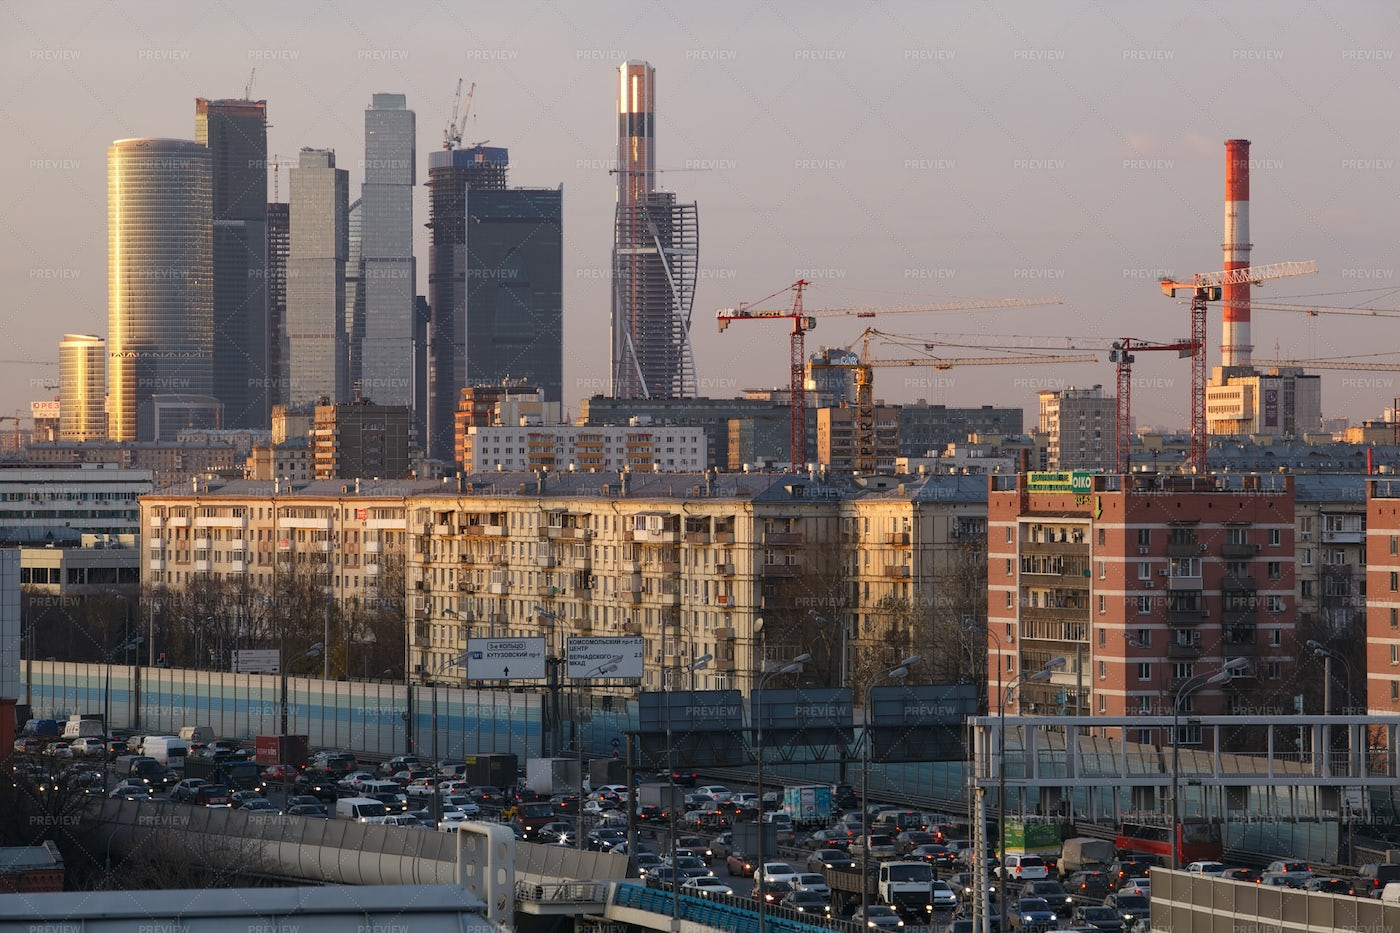 Traffic And Buildings In Moscow: Stock Photos